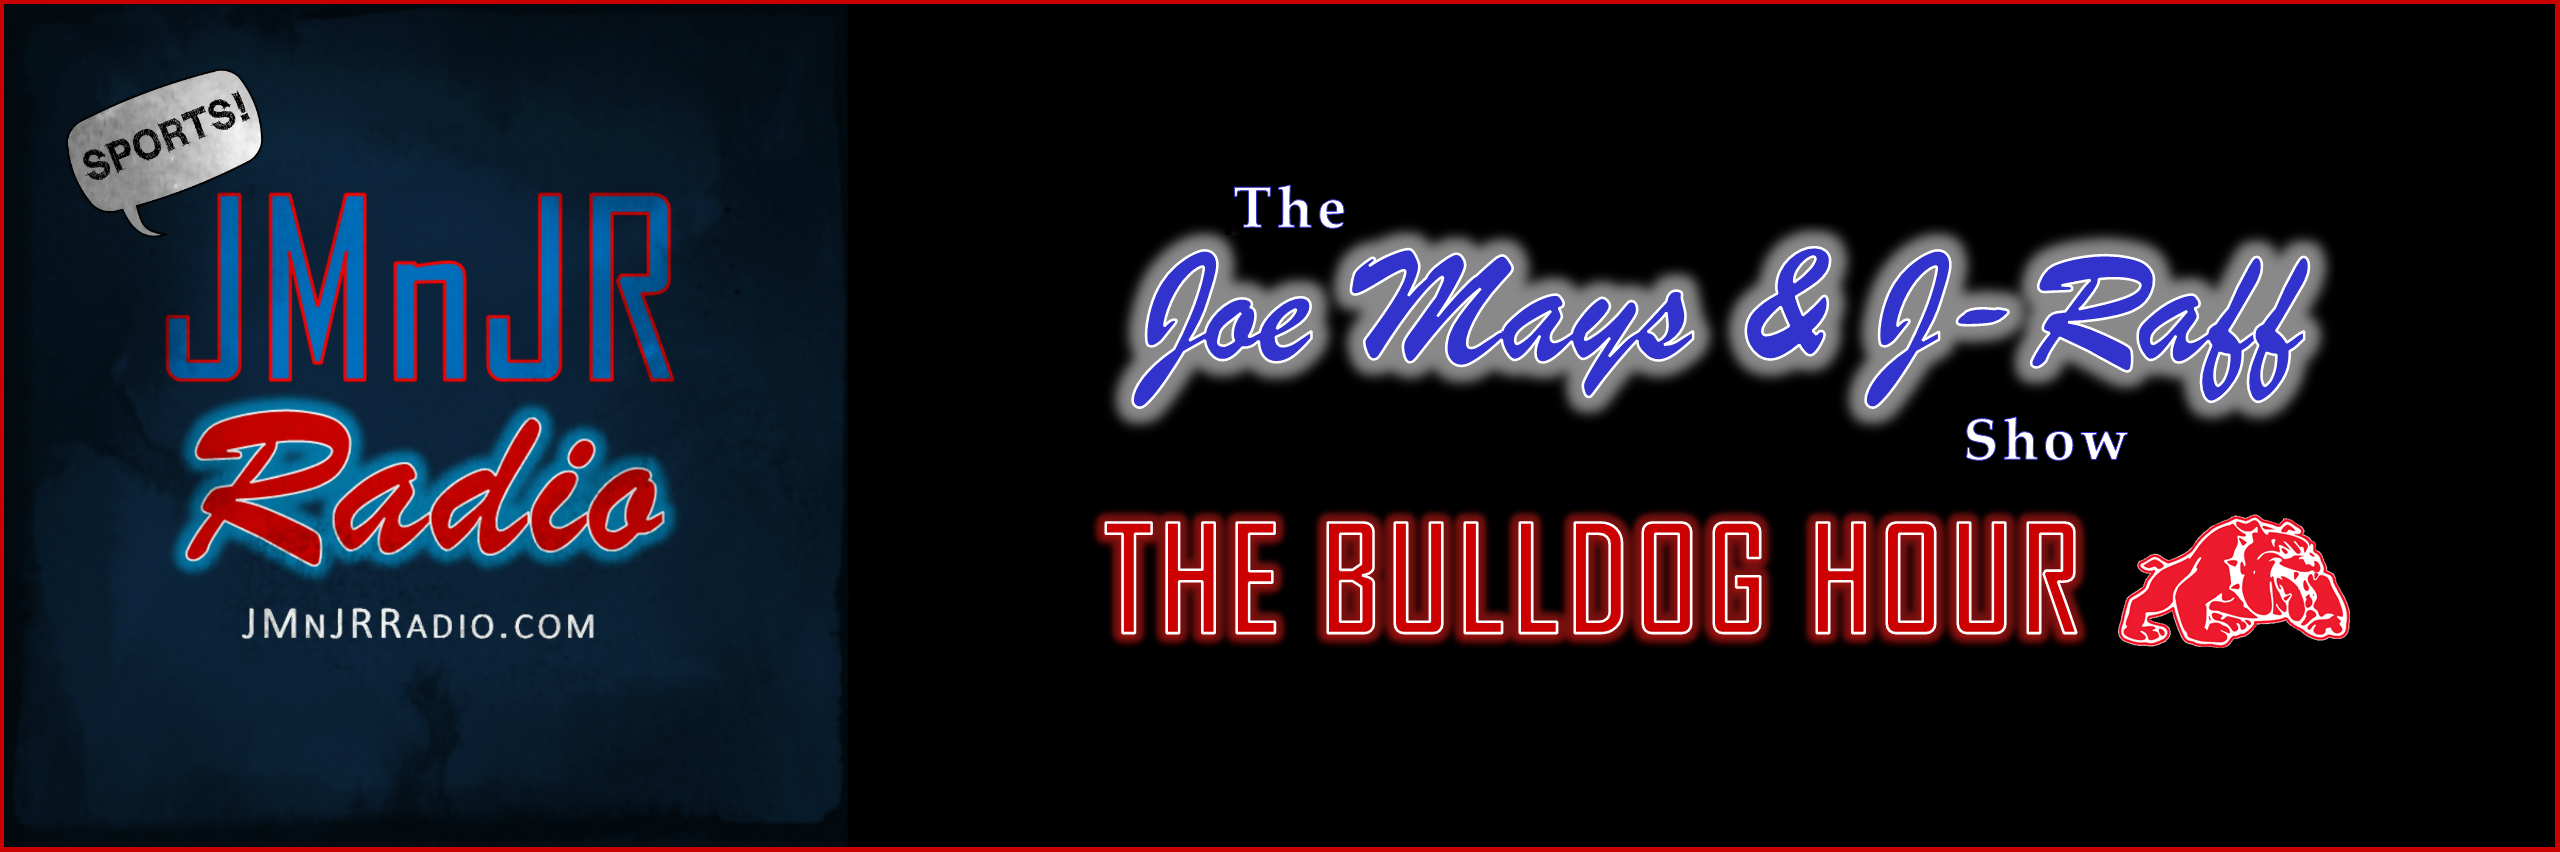 The Joe Mays & J-Raff Show